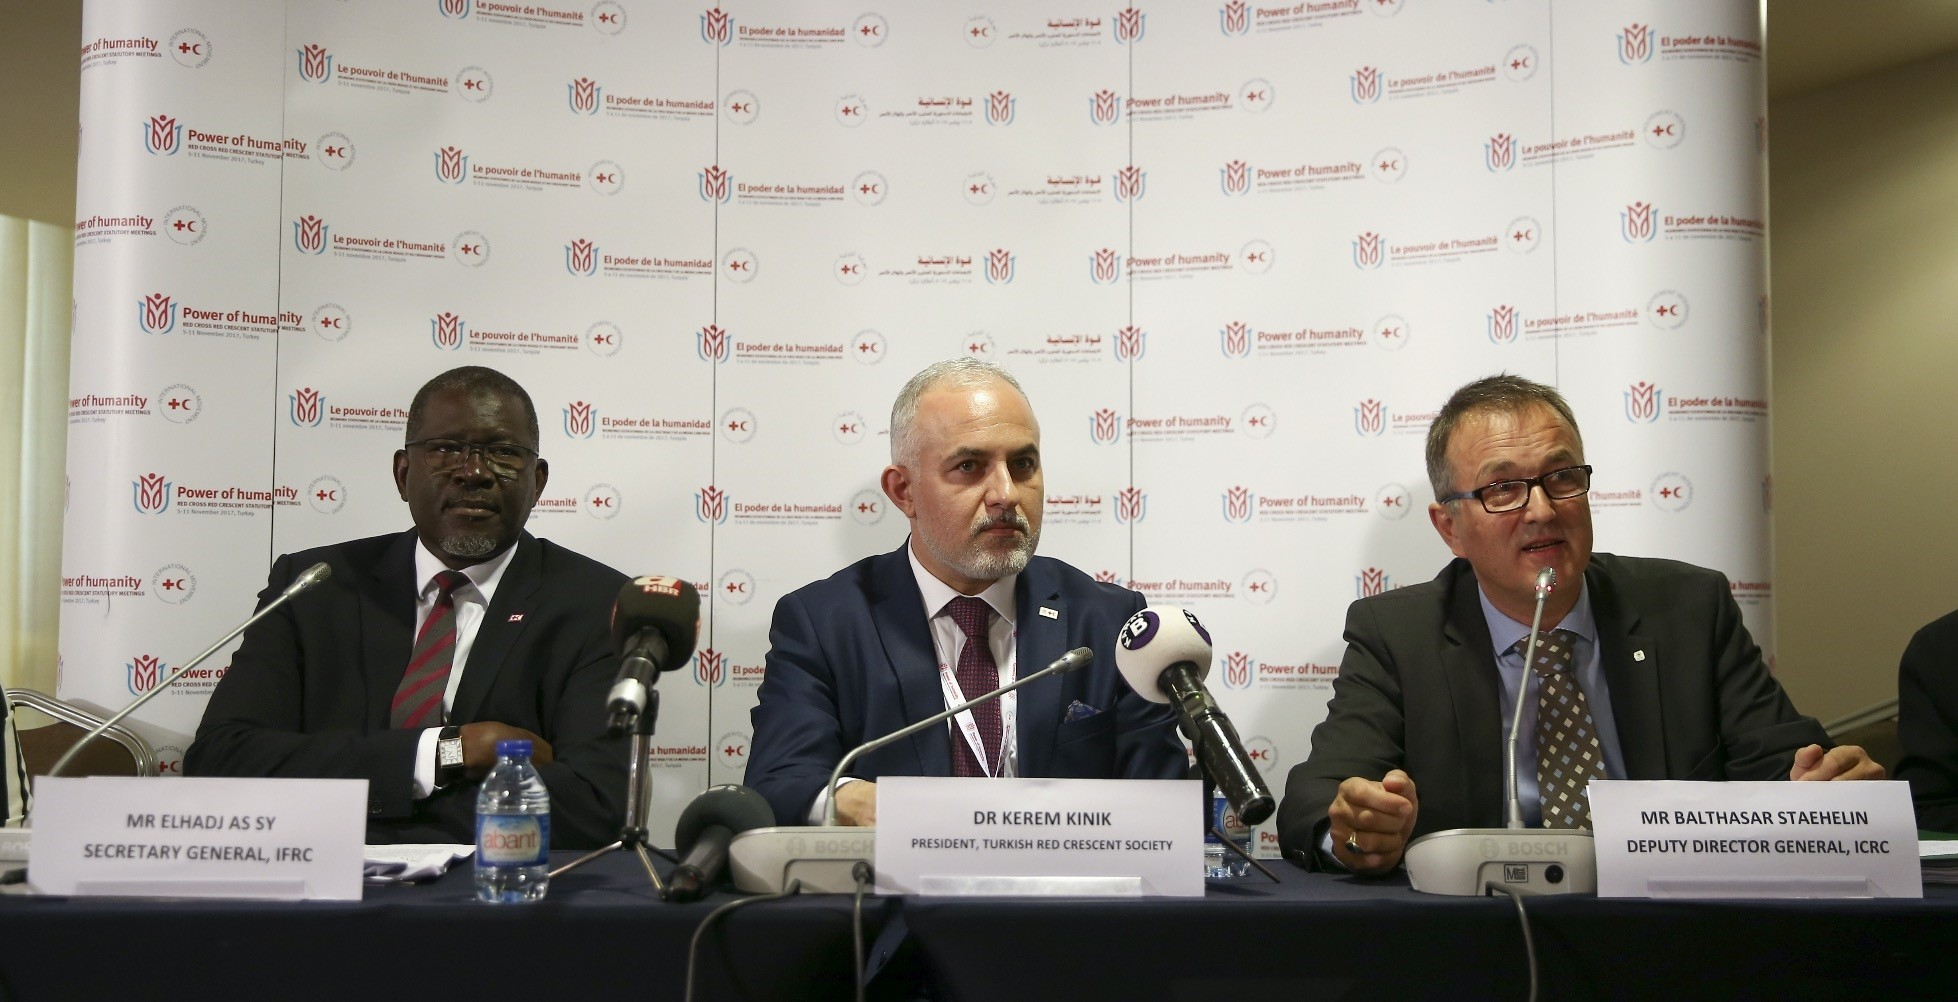 Dr. Kerem Ku0131nu0131k, president of Turkish Red Crescent Society, Balthasar Staehelin, deputy director general of International Committee of Red Cross and Elhadj As Sy, secretary General of the International Federation of Red Cross and Red Crescent